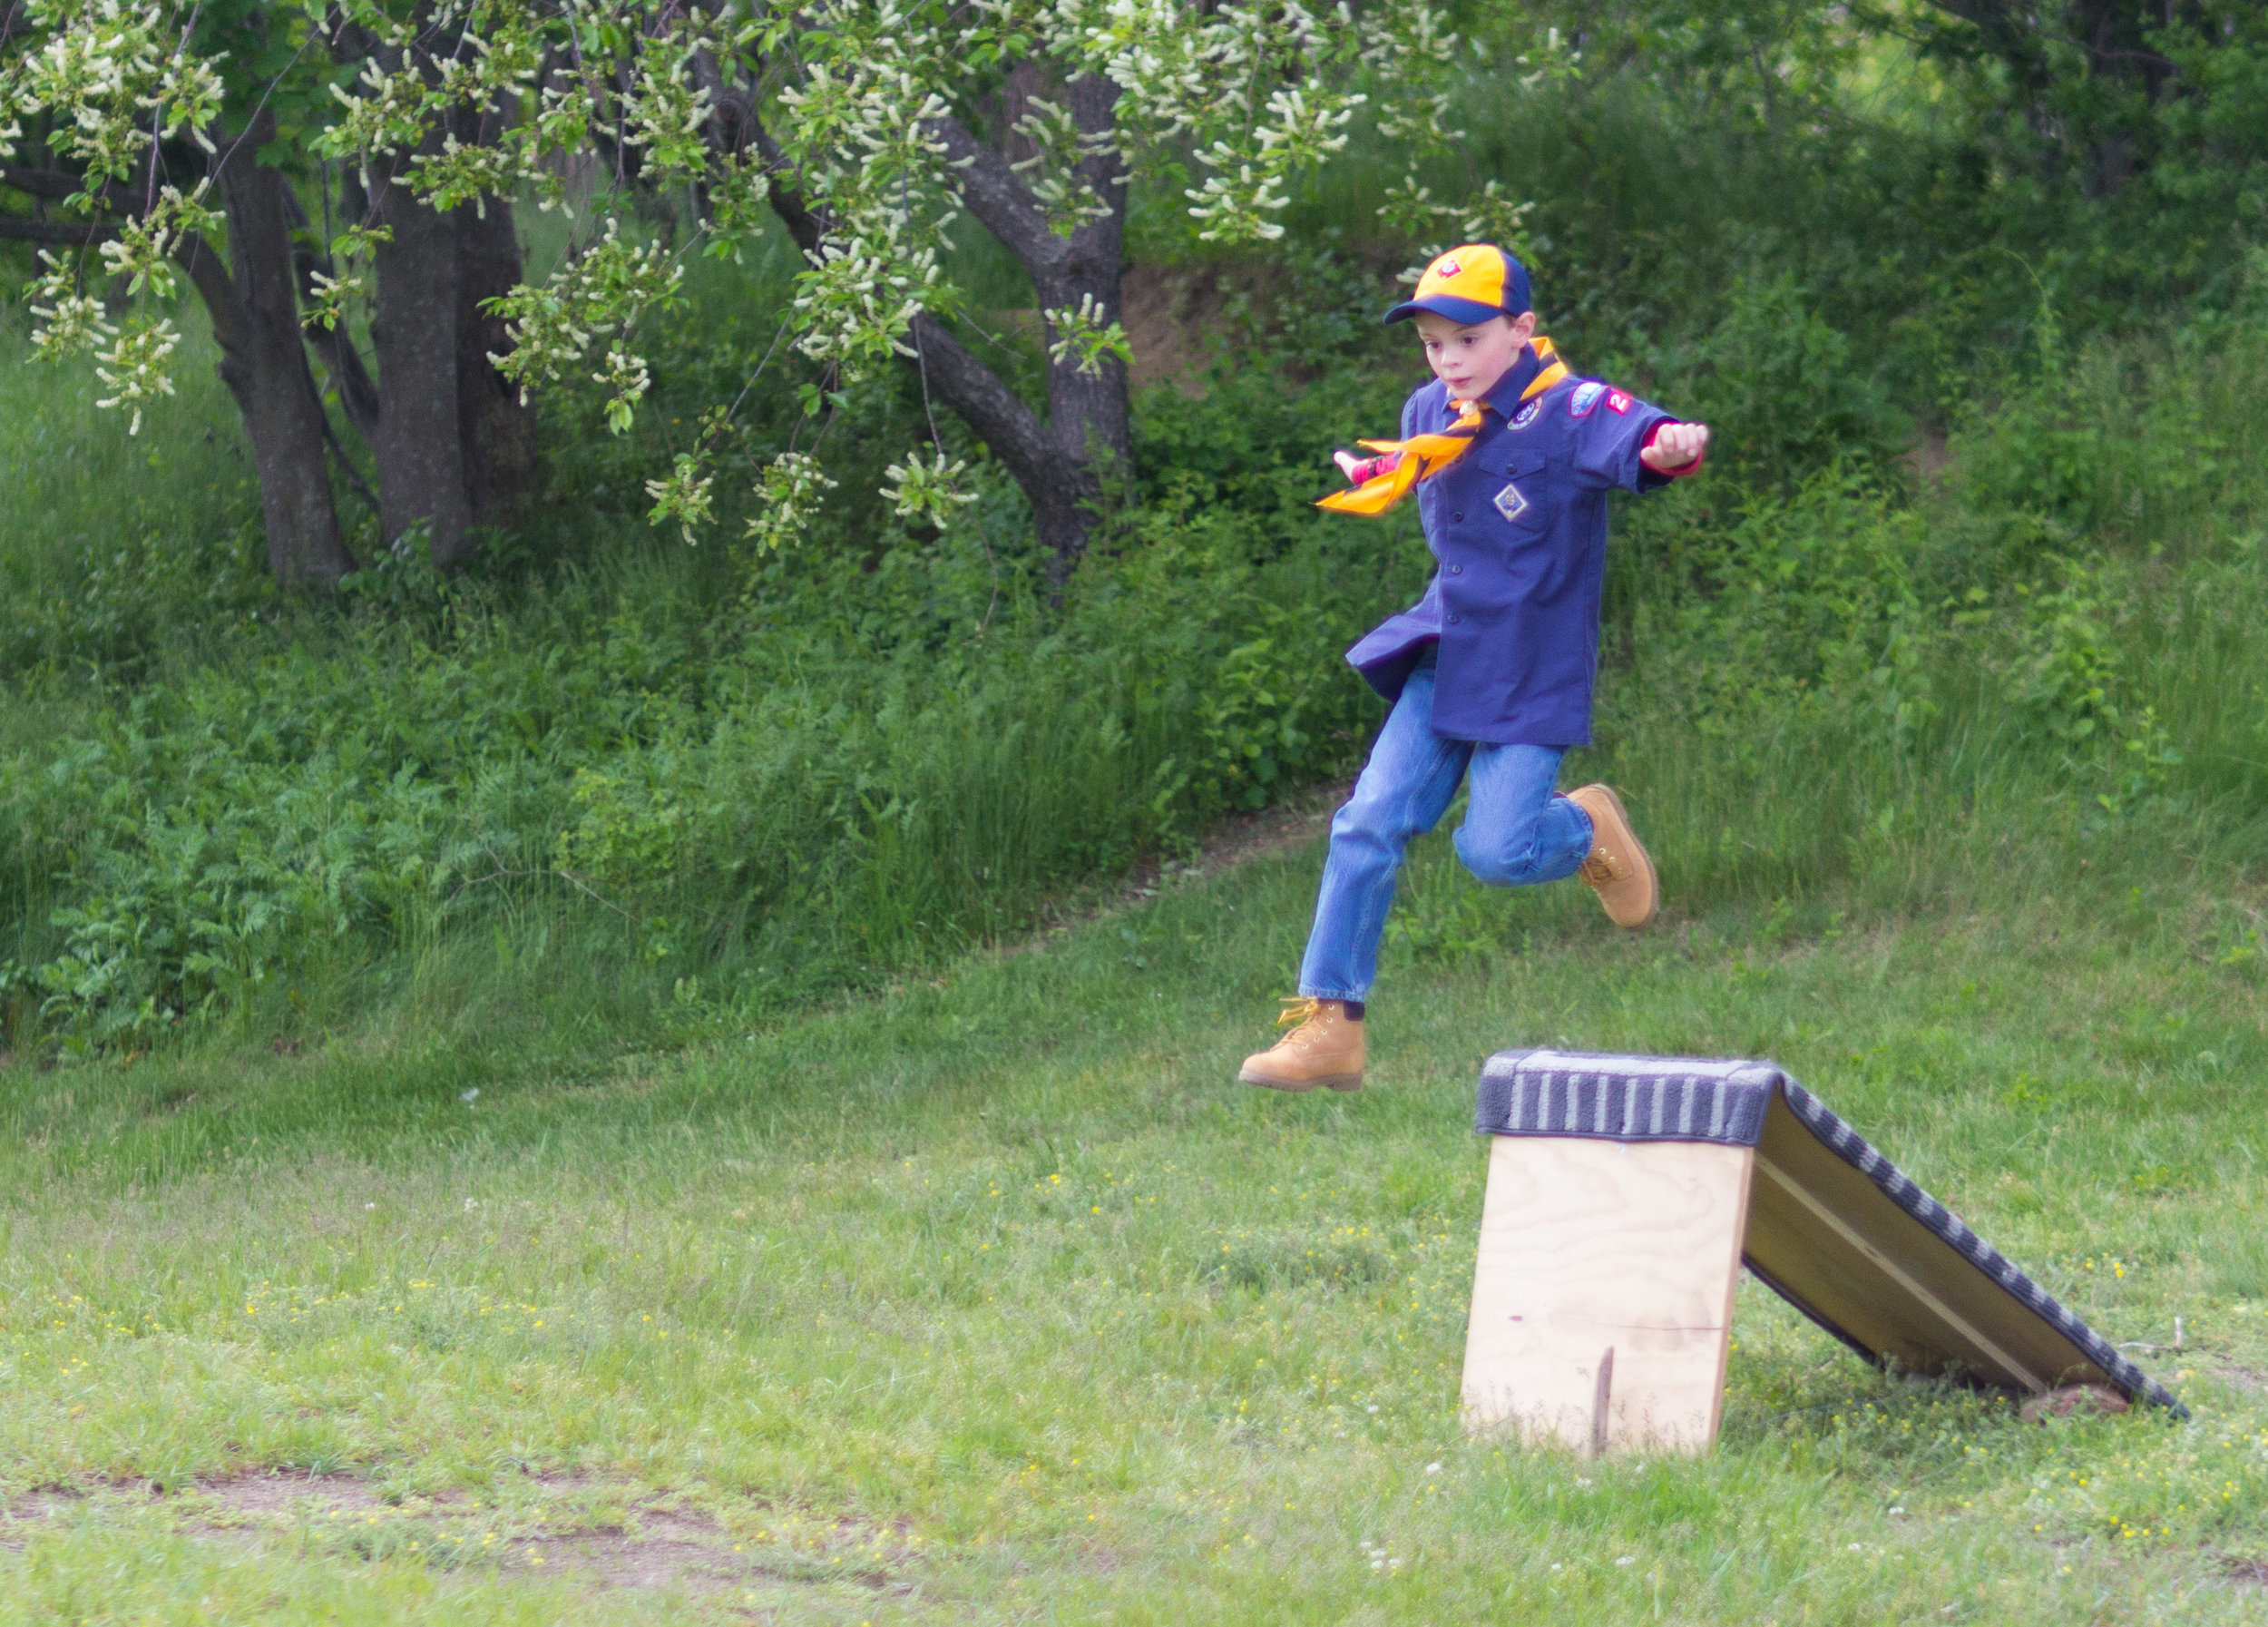 Cub Scouts Obstacle Course_06.jpg